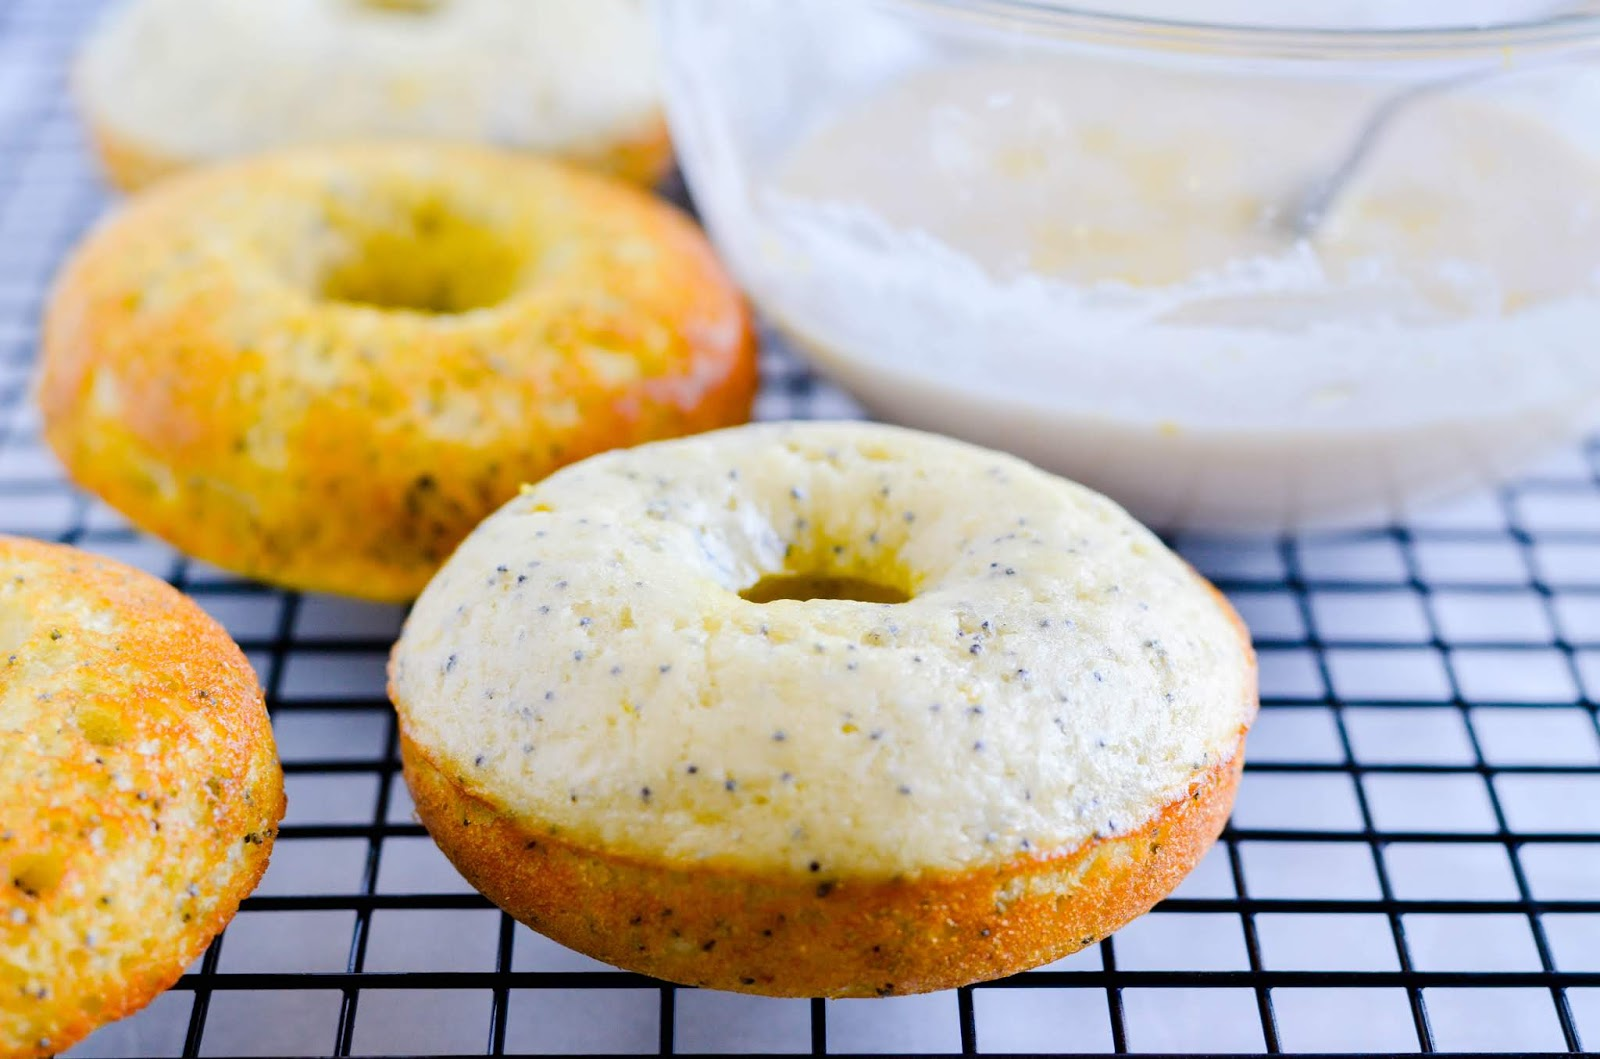 These Lemon Poppyseed Donuts have a moist, tender crumb and are bursting with lemon flavor! Plus, they're baked. Which means they are super easy!